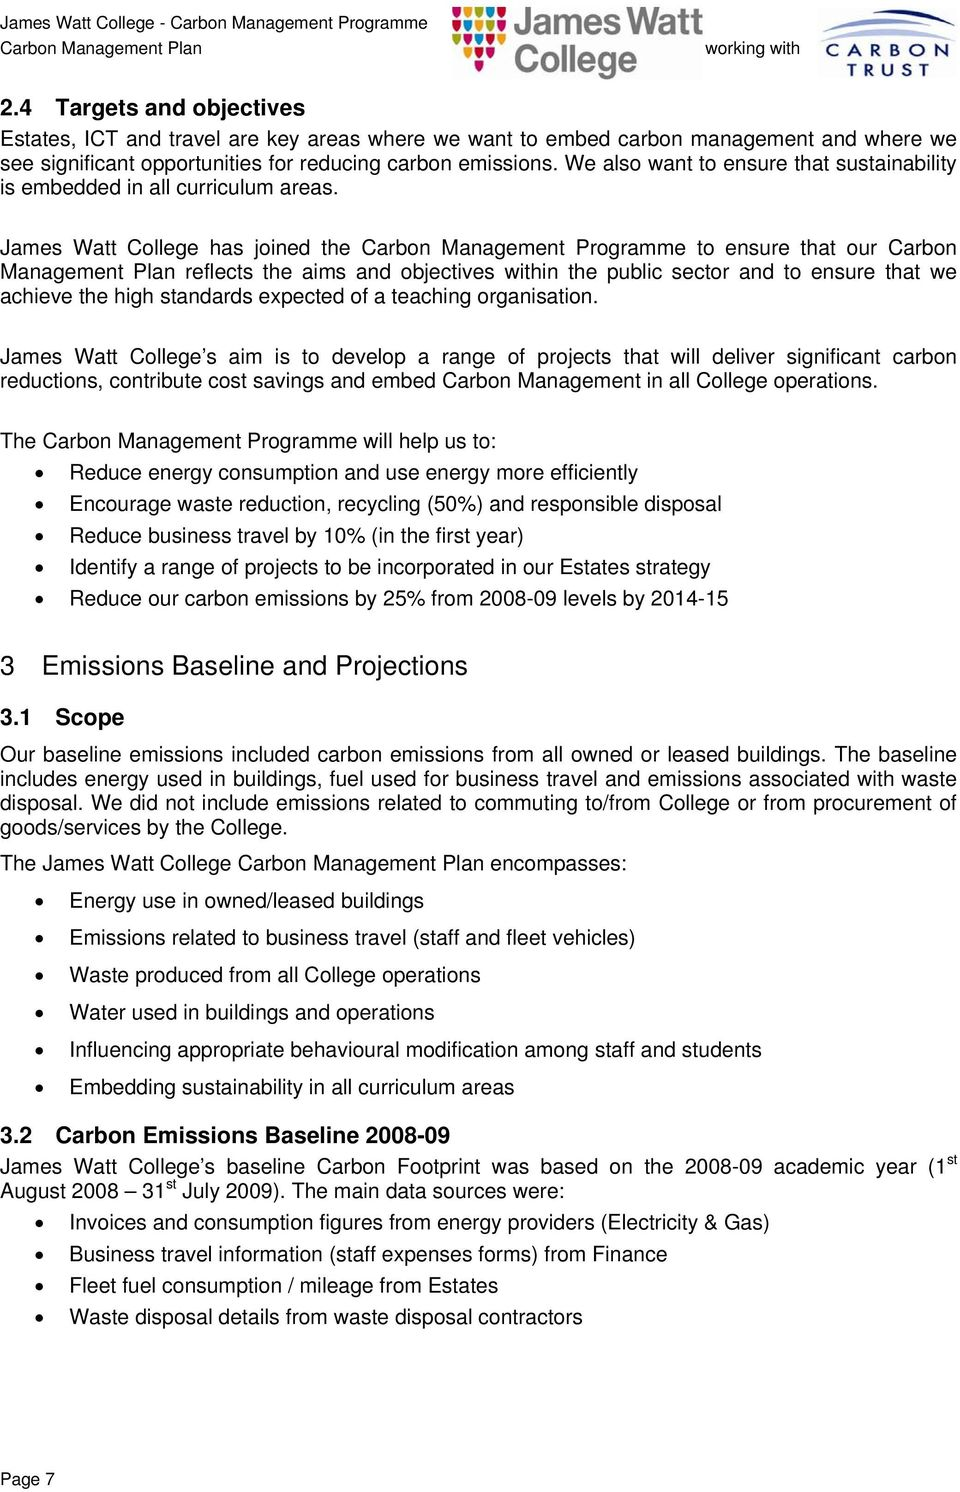 James Watt College has joined the Carbon Management Programme to ensure that our Carbon Management Plan reflects the aims and objectives within the public sector and to ensure that we achieve the